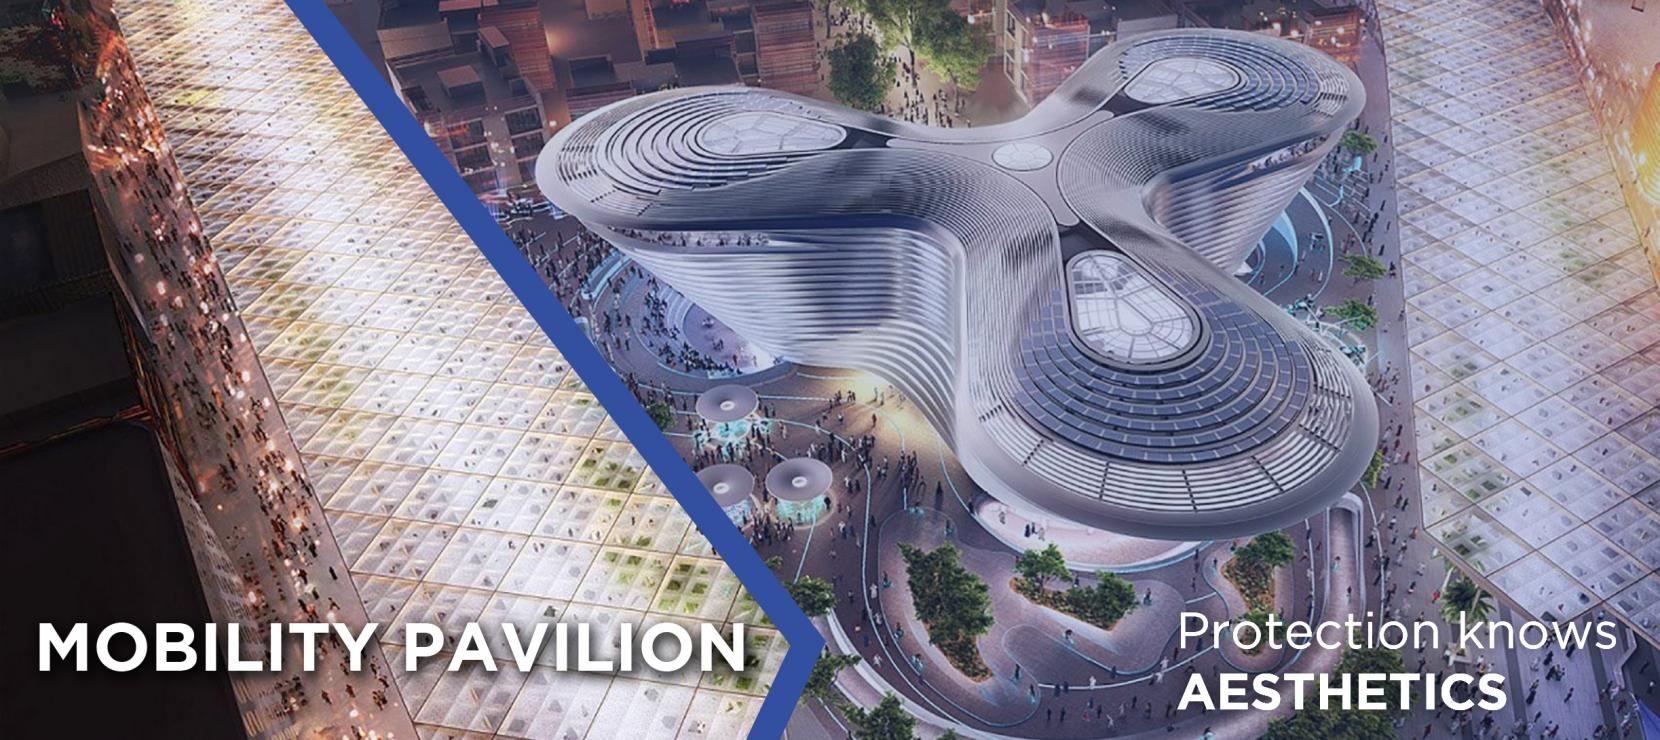 Mobility Pavilion at Expo 2020